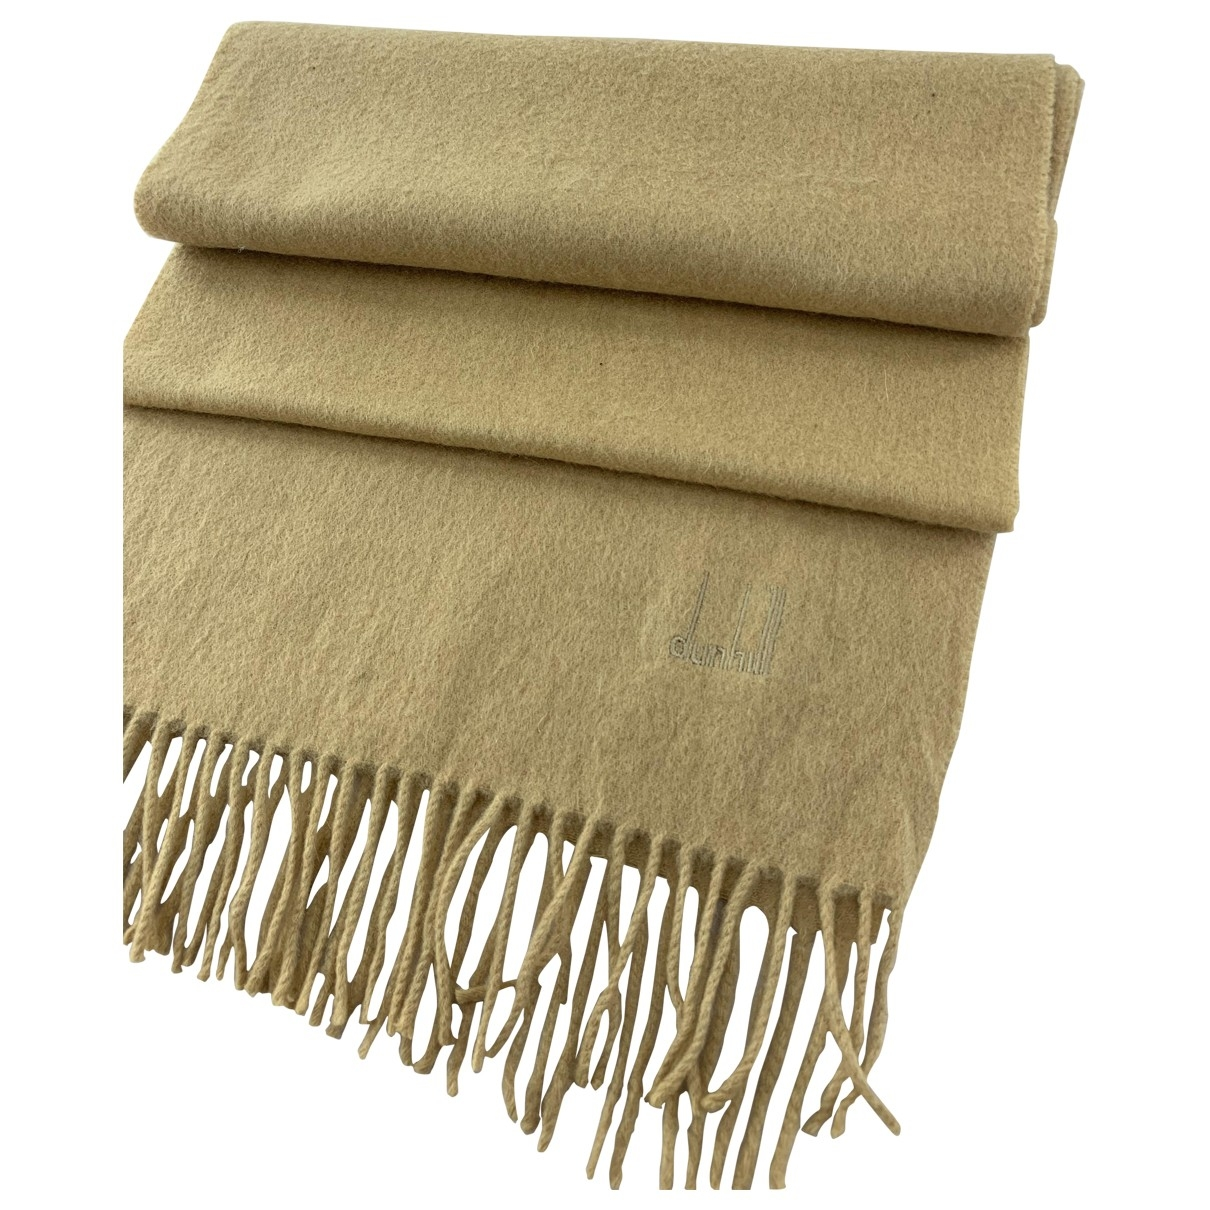 Alfred Dunhill \N Brown Cashmere scarf for Women \N